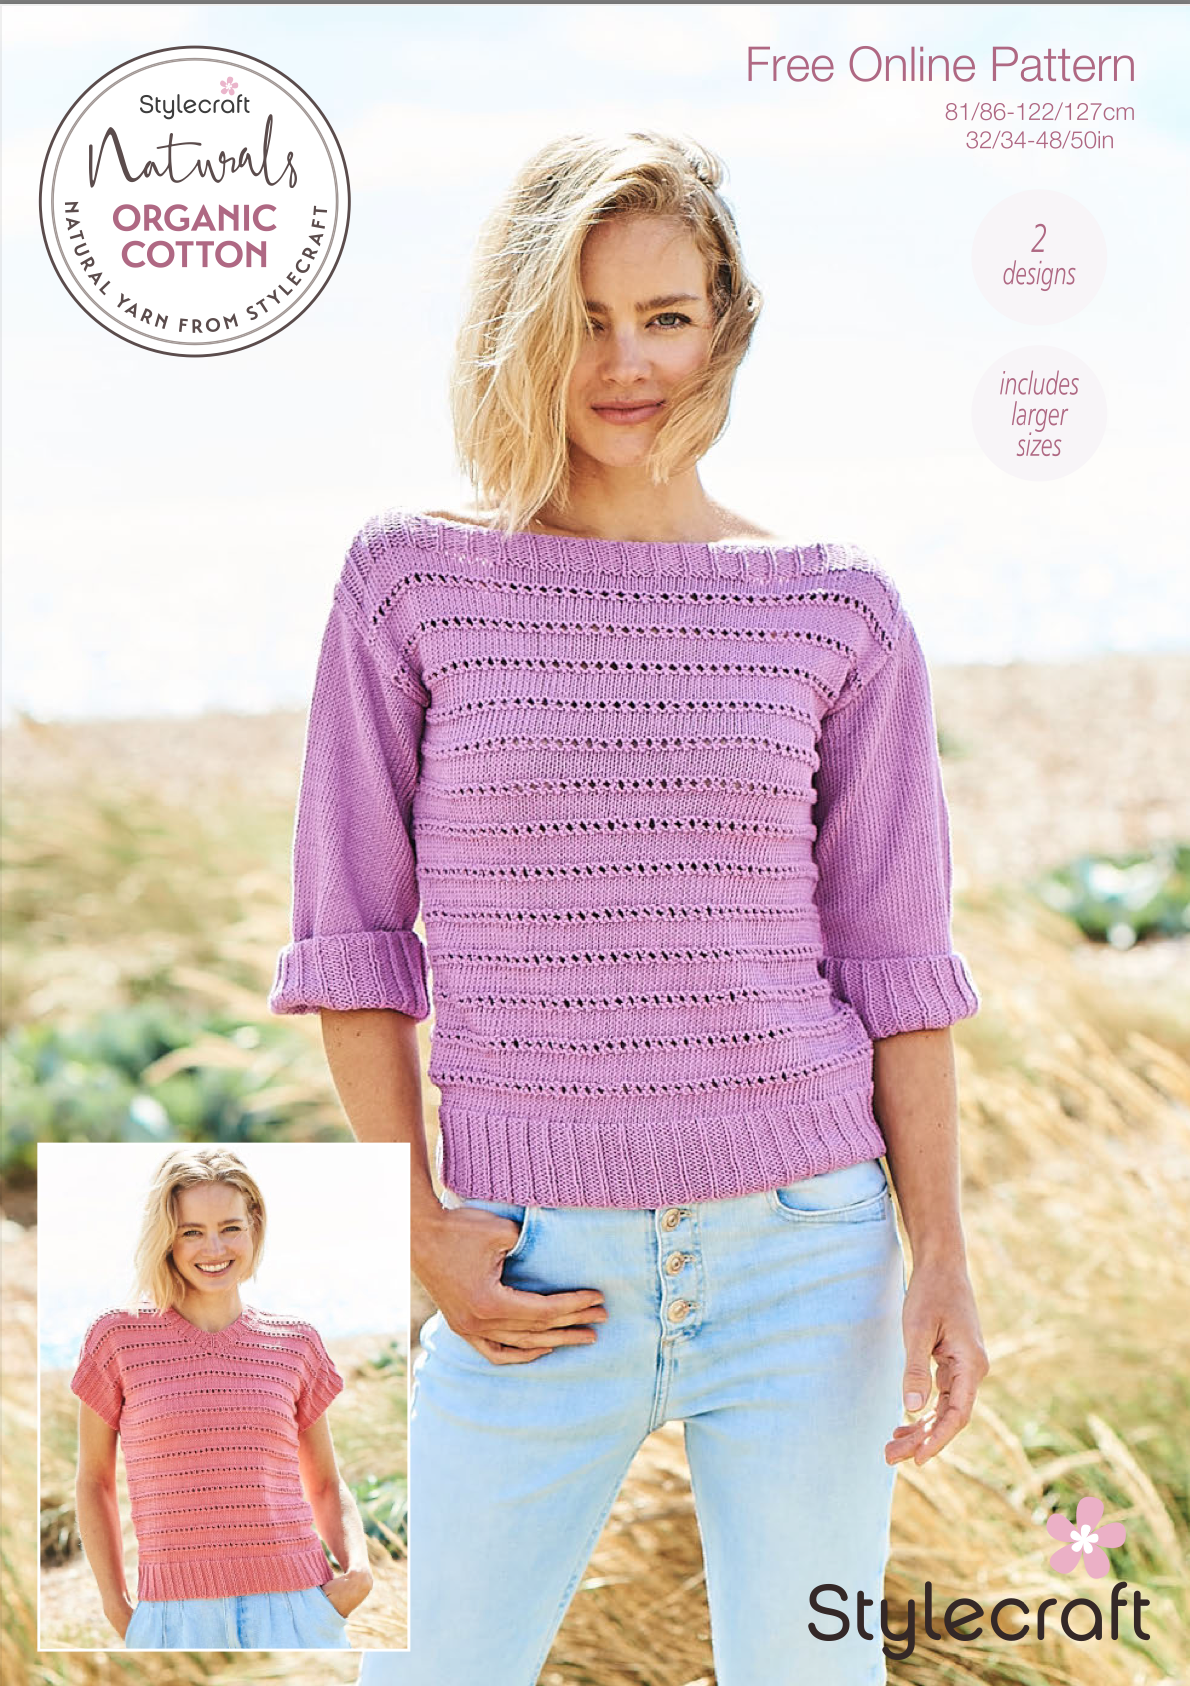 Stylecraft Naturals Organic Cotton Knitted Jumper Pattern F091 (free download) product image